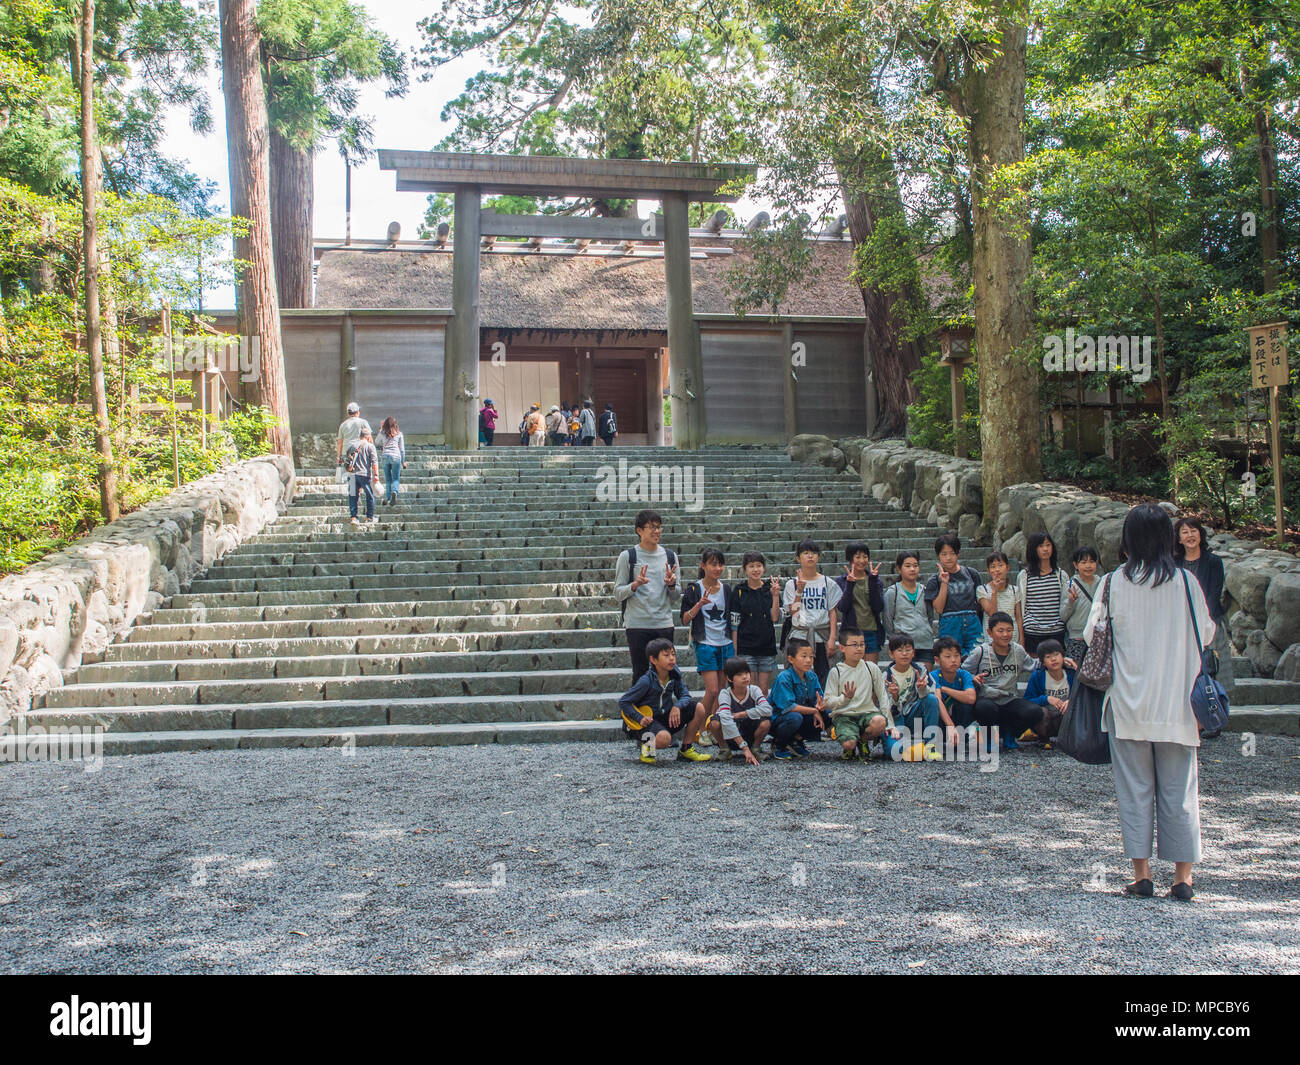 A group of Japanese school children being photographed in front of Goshoden main sanctuary, Naiku, Ise Jingu, Mie, Japan - Stock Image